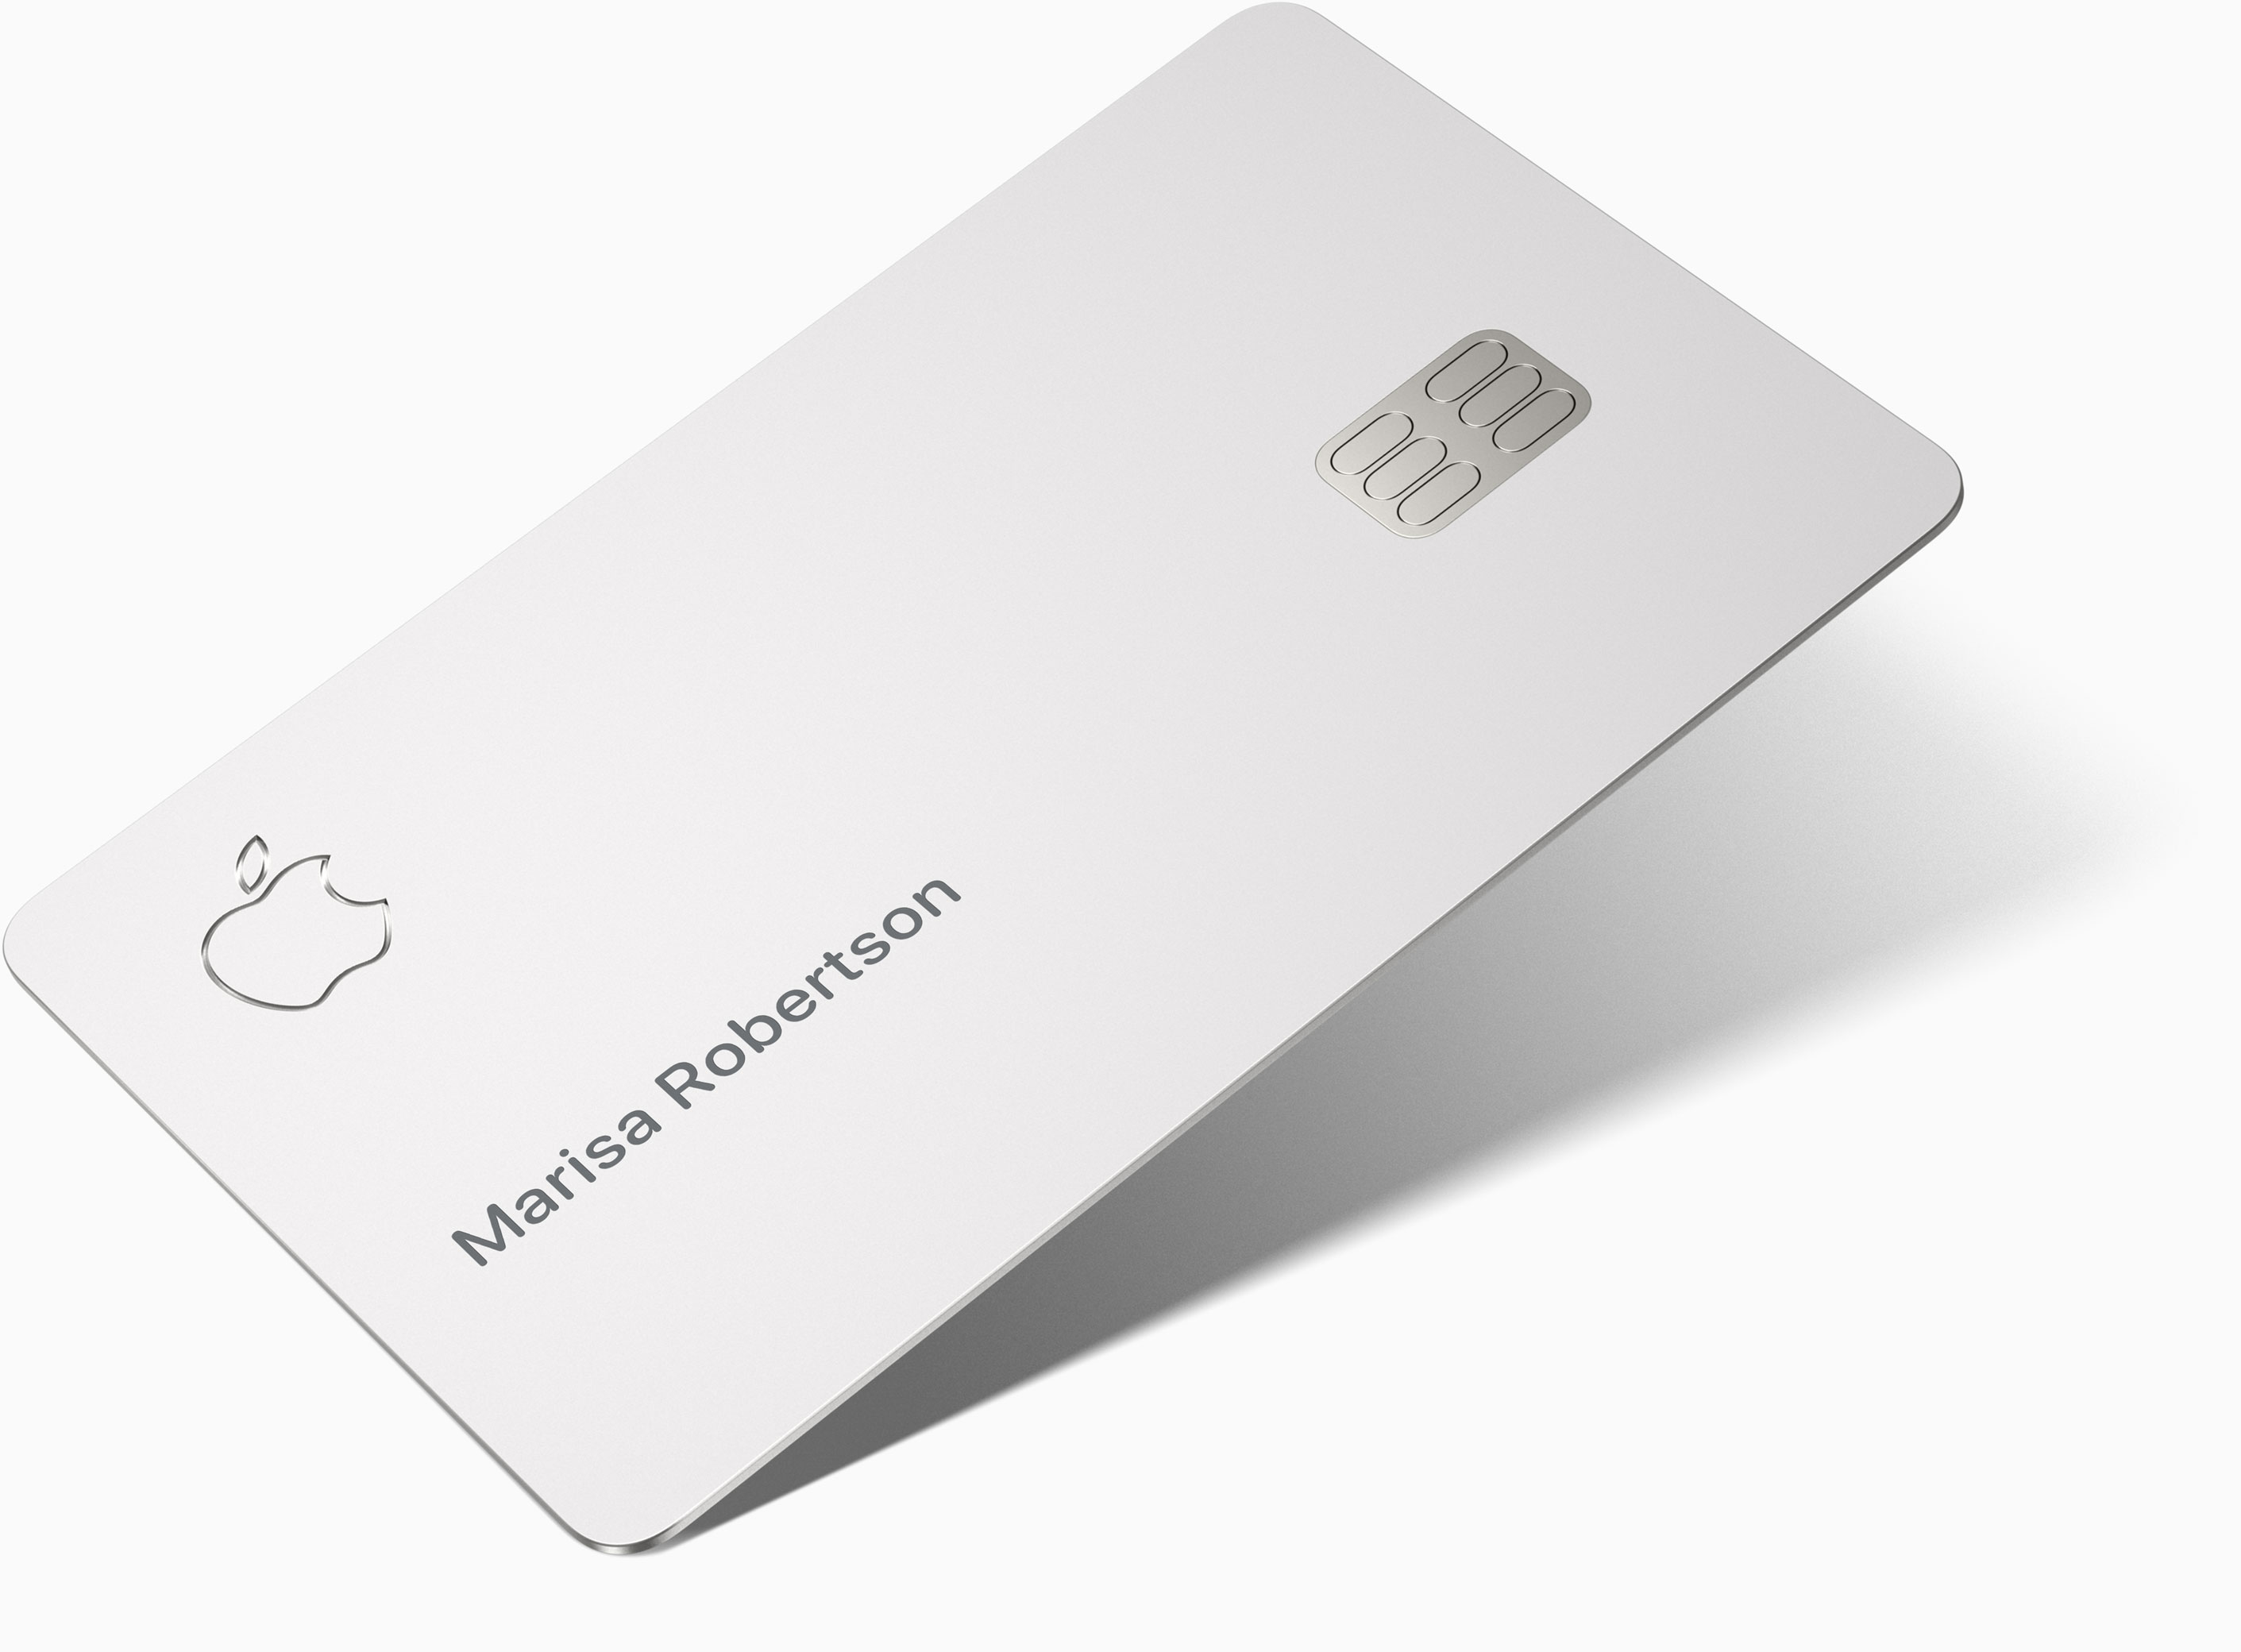 You Can Ask To Skip Your Apple Card Payment For March Apple Tells Customers Techcrunch